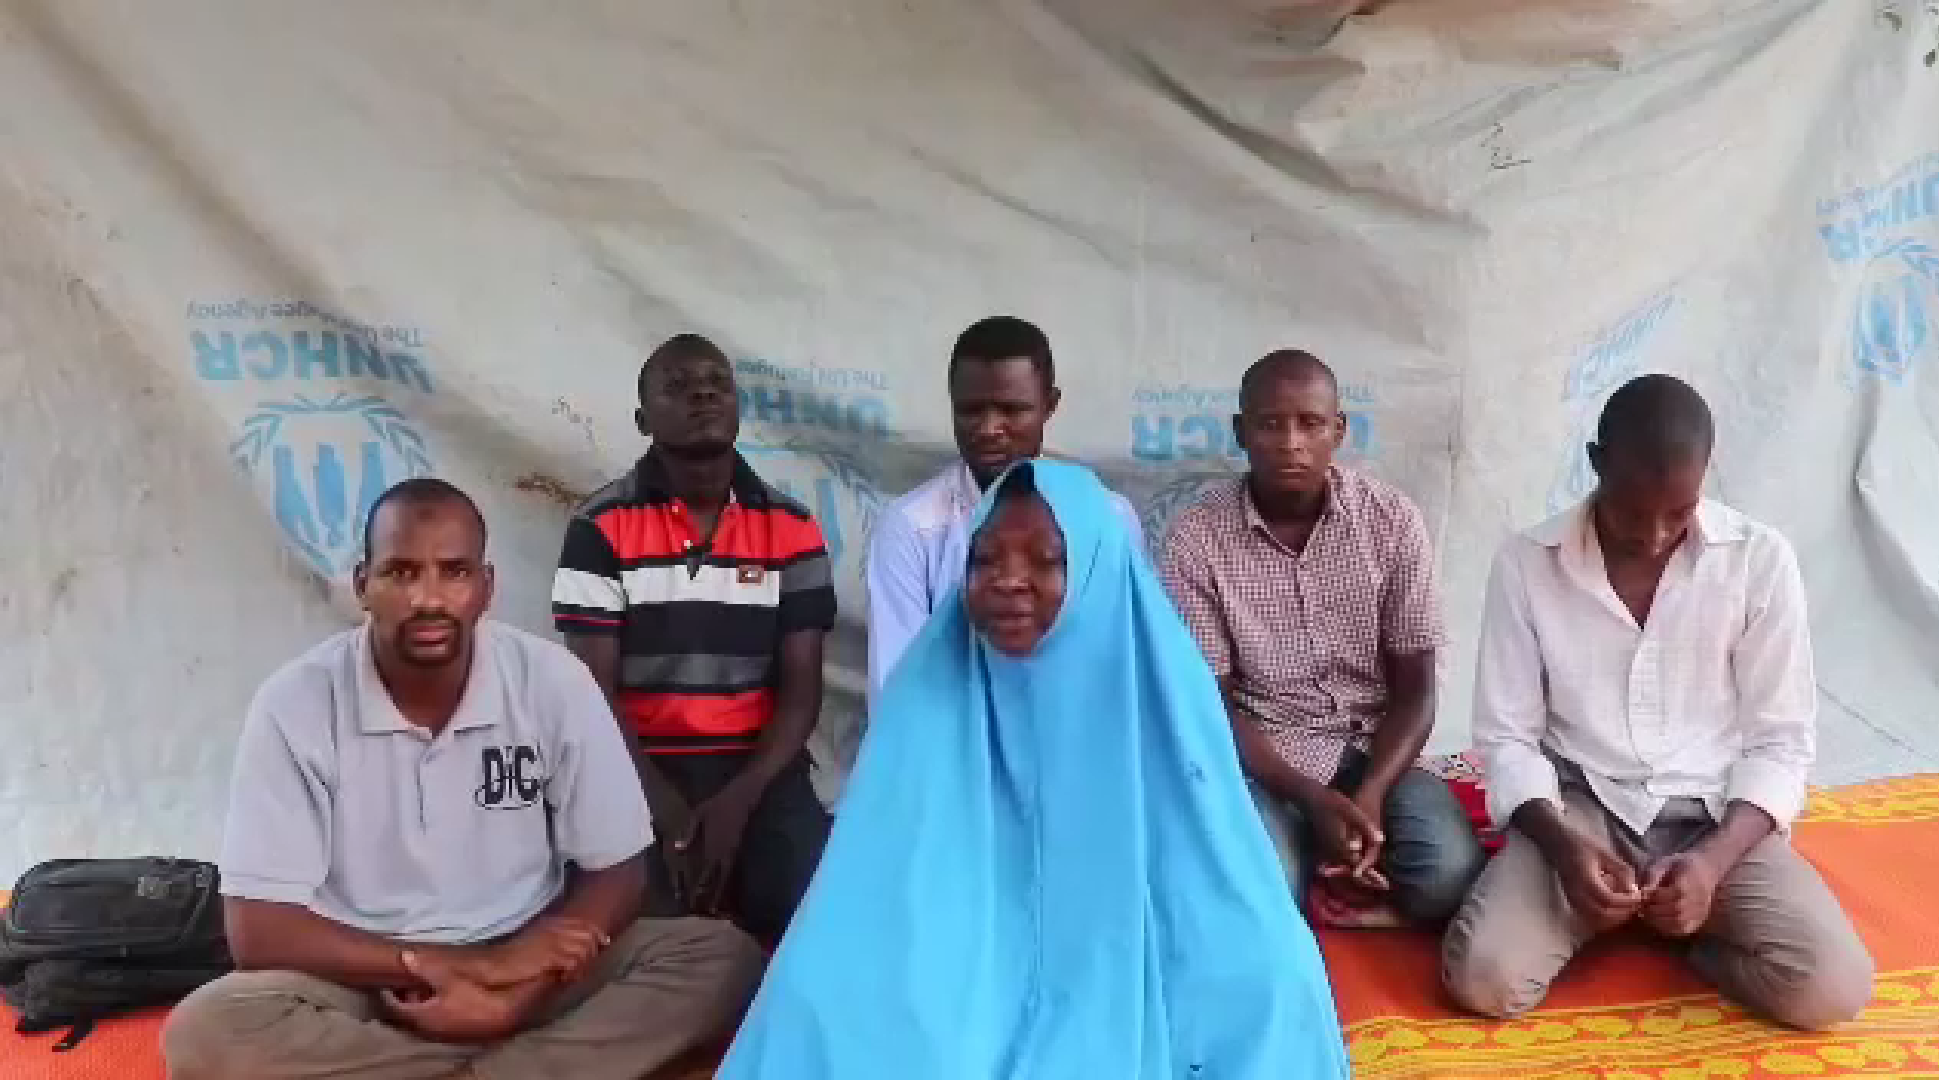 Presidency reacts to video on abducted humanitarian workers in Borno